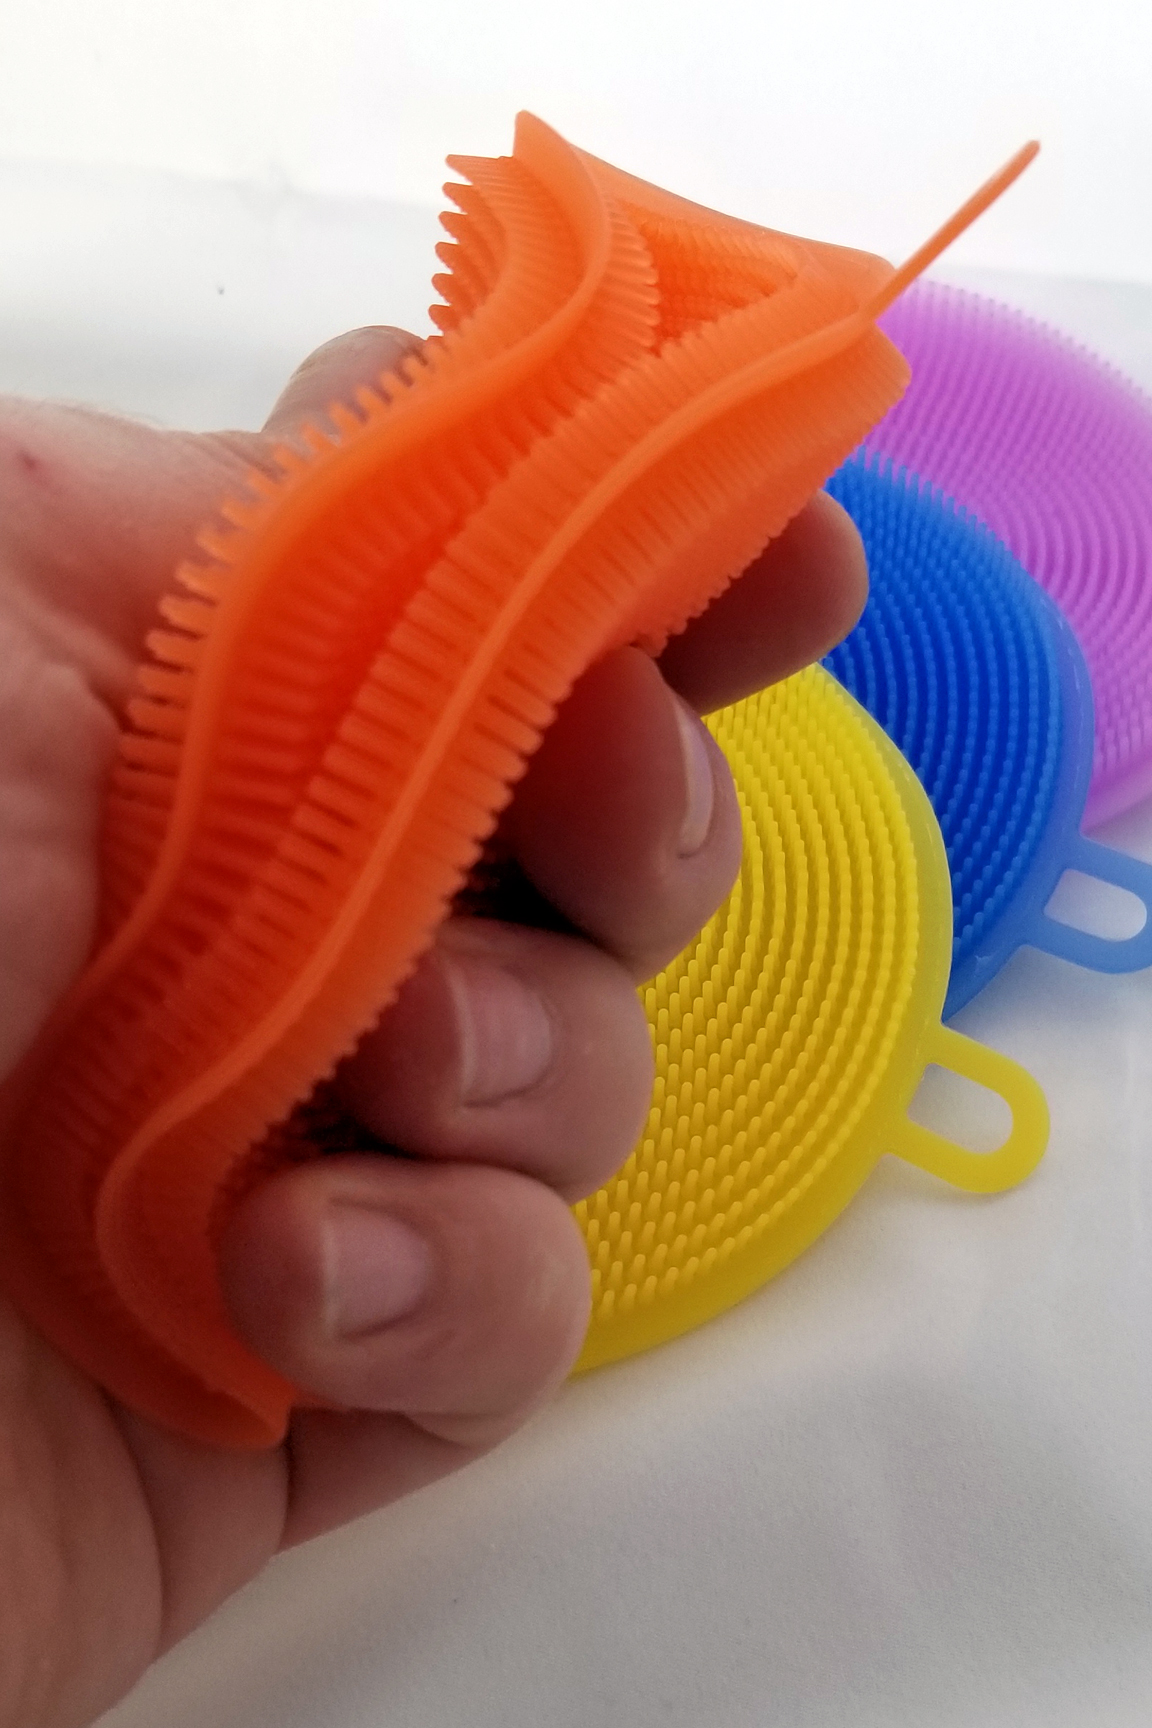 Super flexible and able to hold water and soap like a regular sponge.